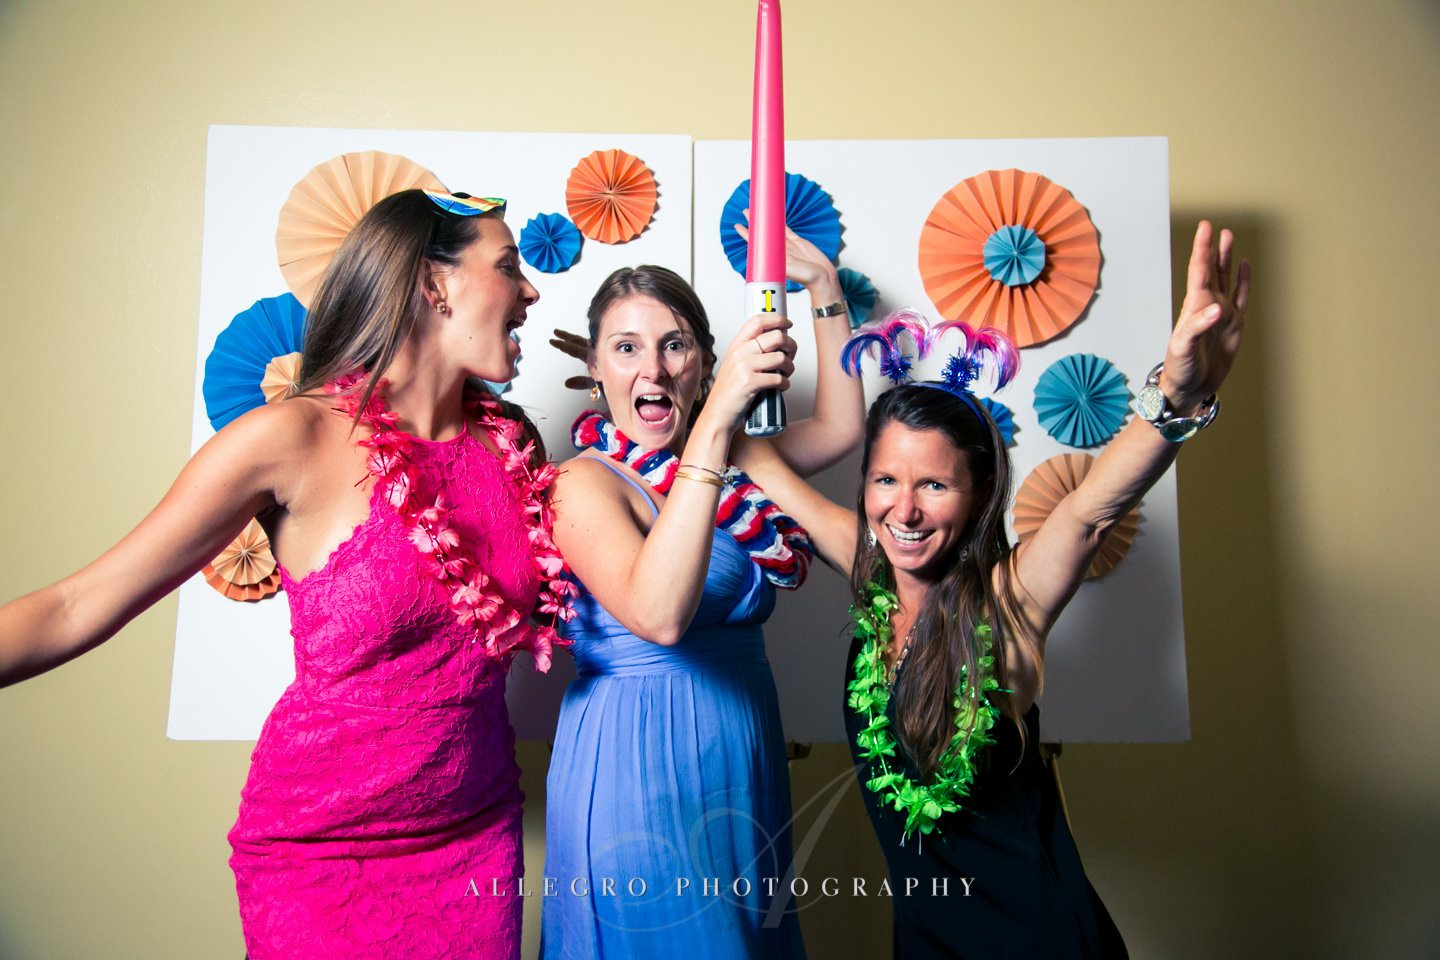 photo booth photo by Allegro Photography